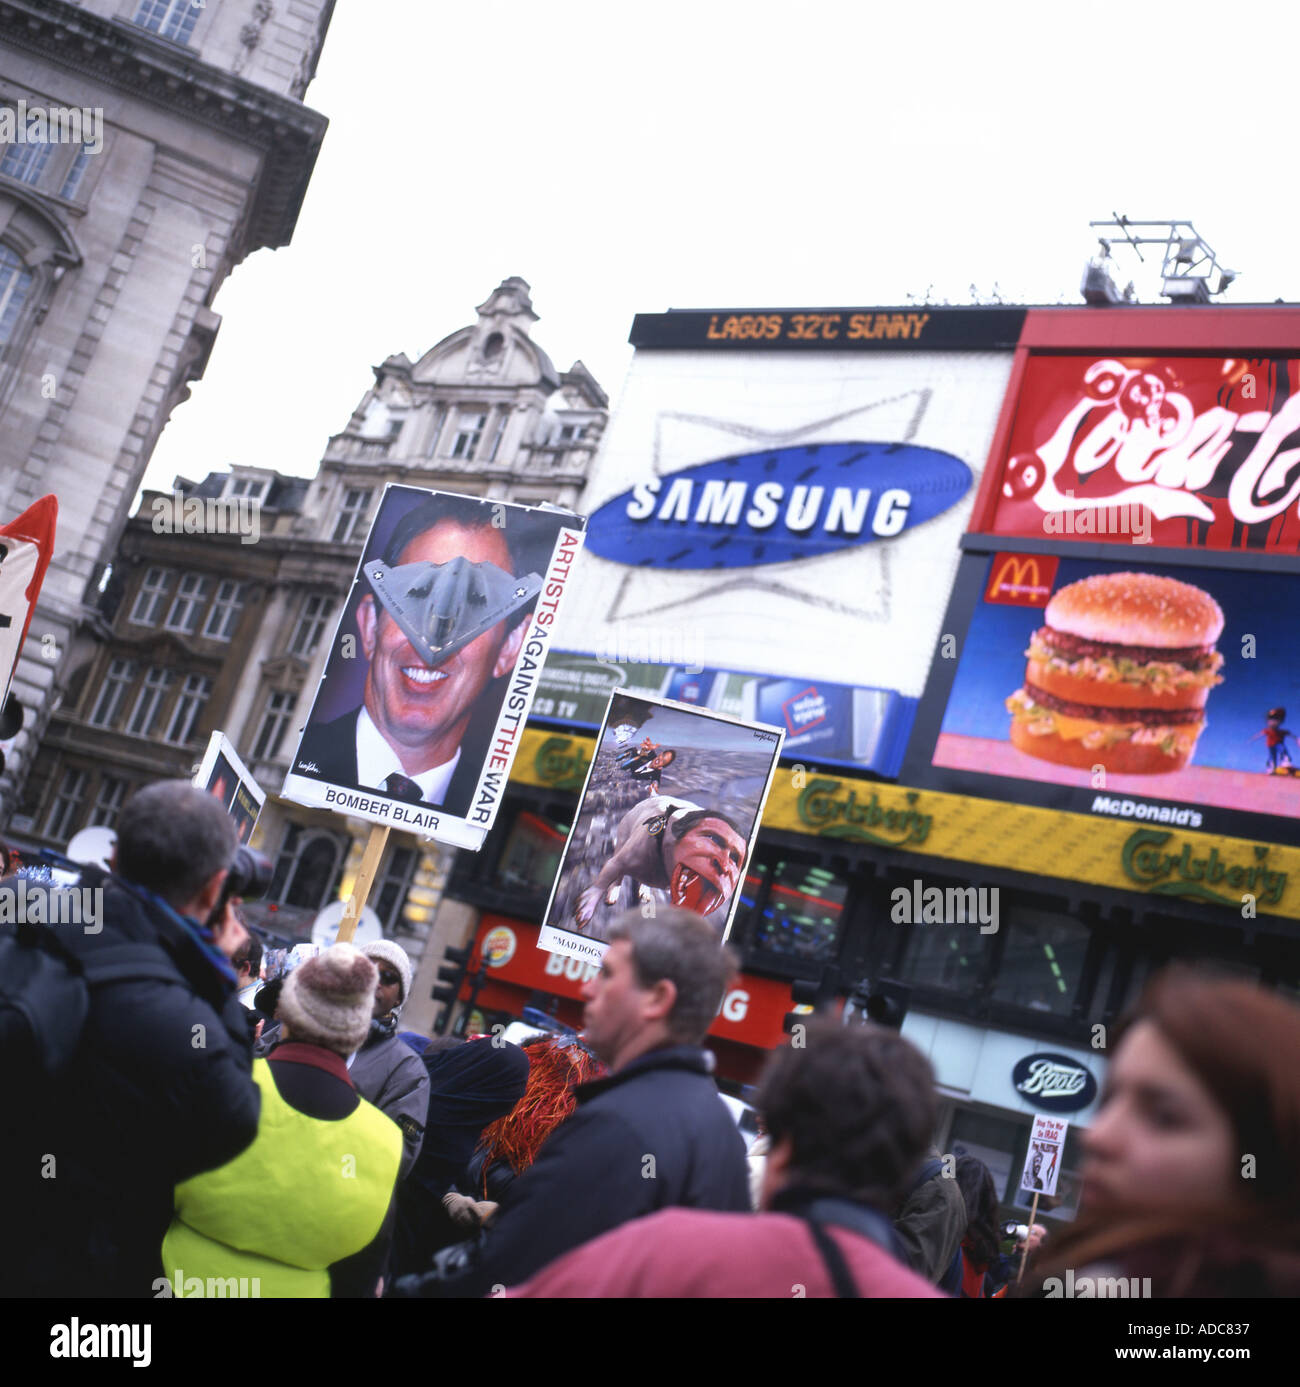 Picadilly Circus Anti-War Rally ANTI IRAQ WAR MARCH on 15th February 2003 in London, England, UK KATHY DEWITT - Stock Image